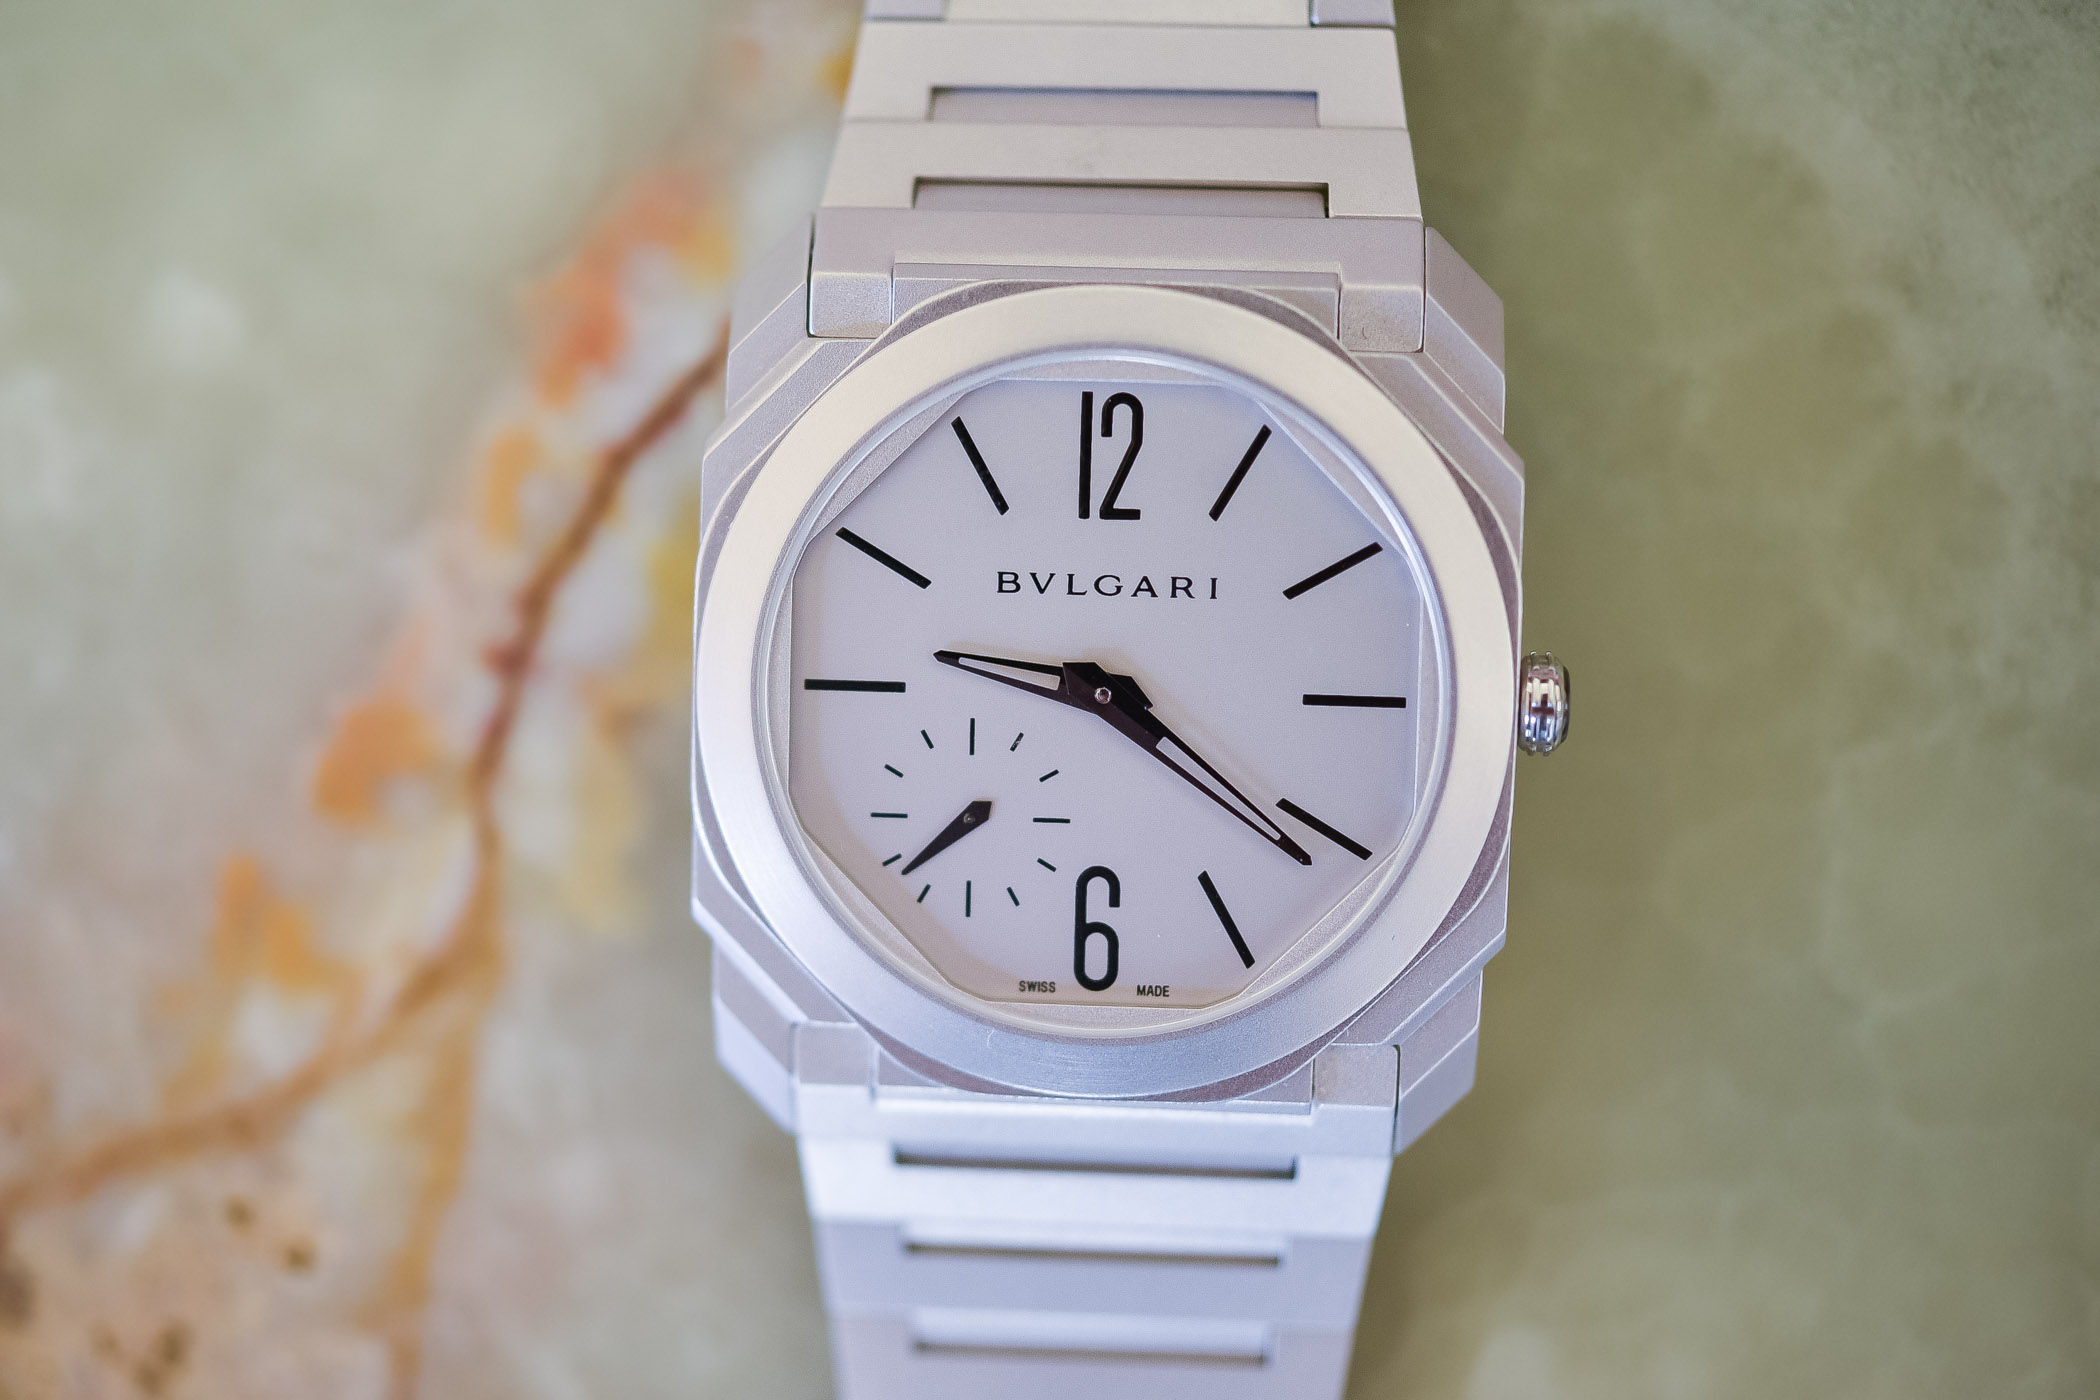 Bulgari Octo Finissimo Automatic Sandblasted Steel